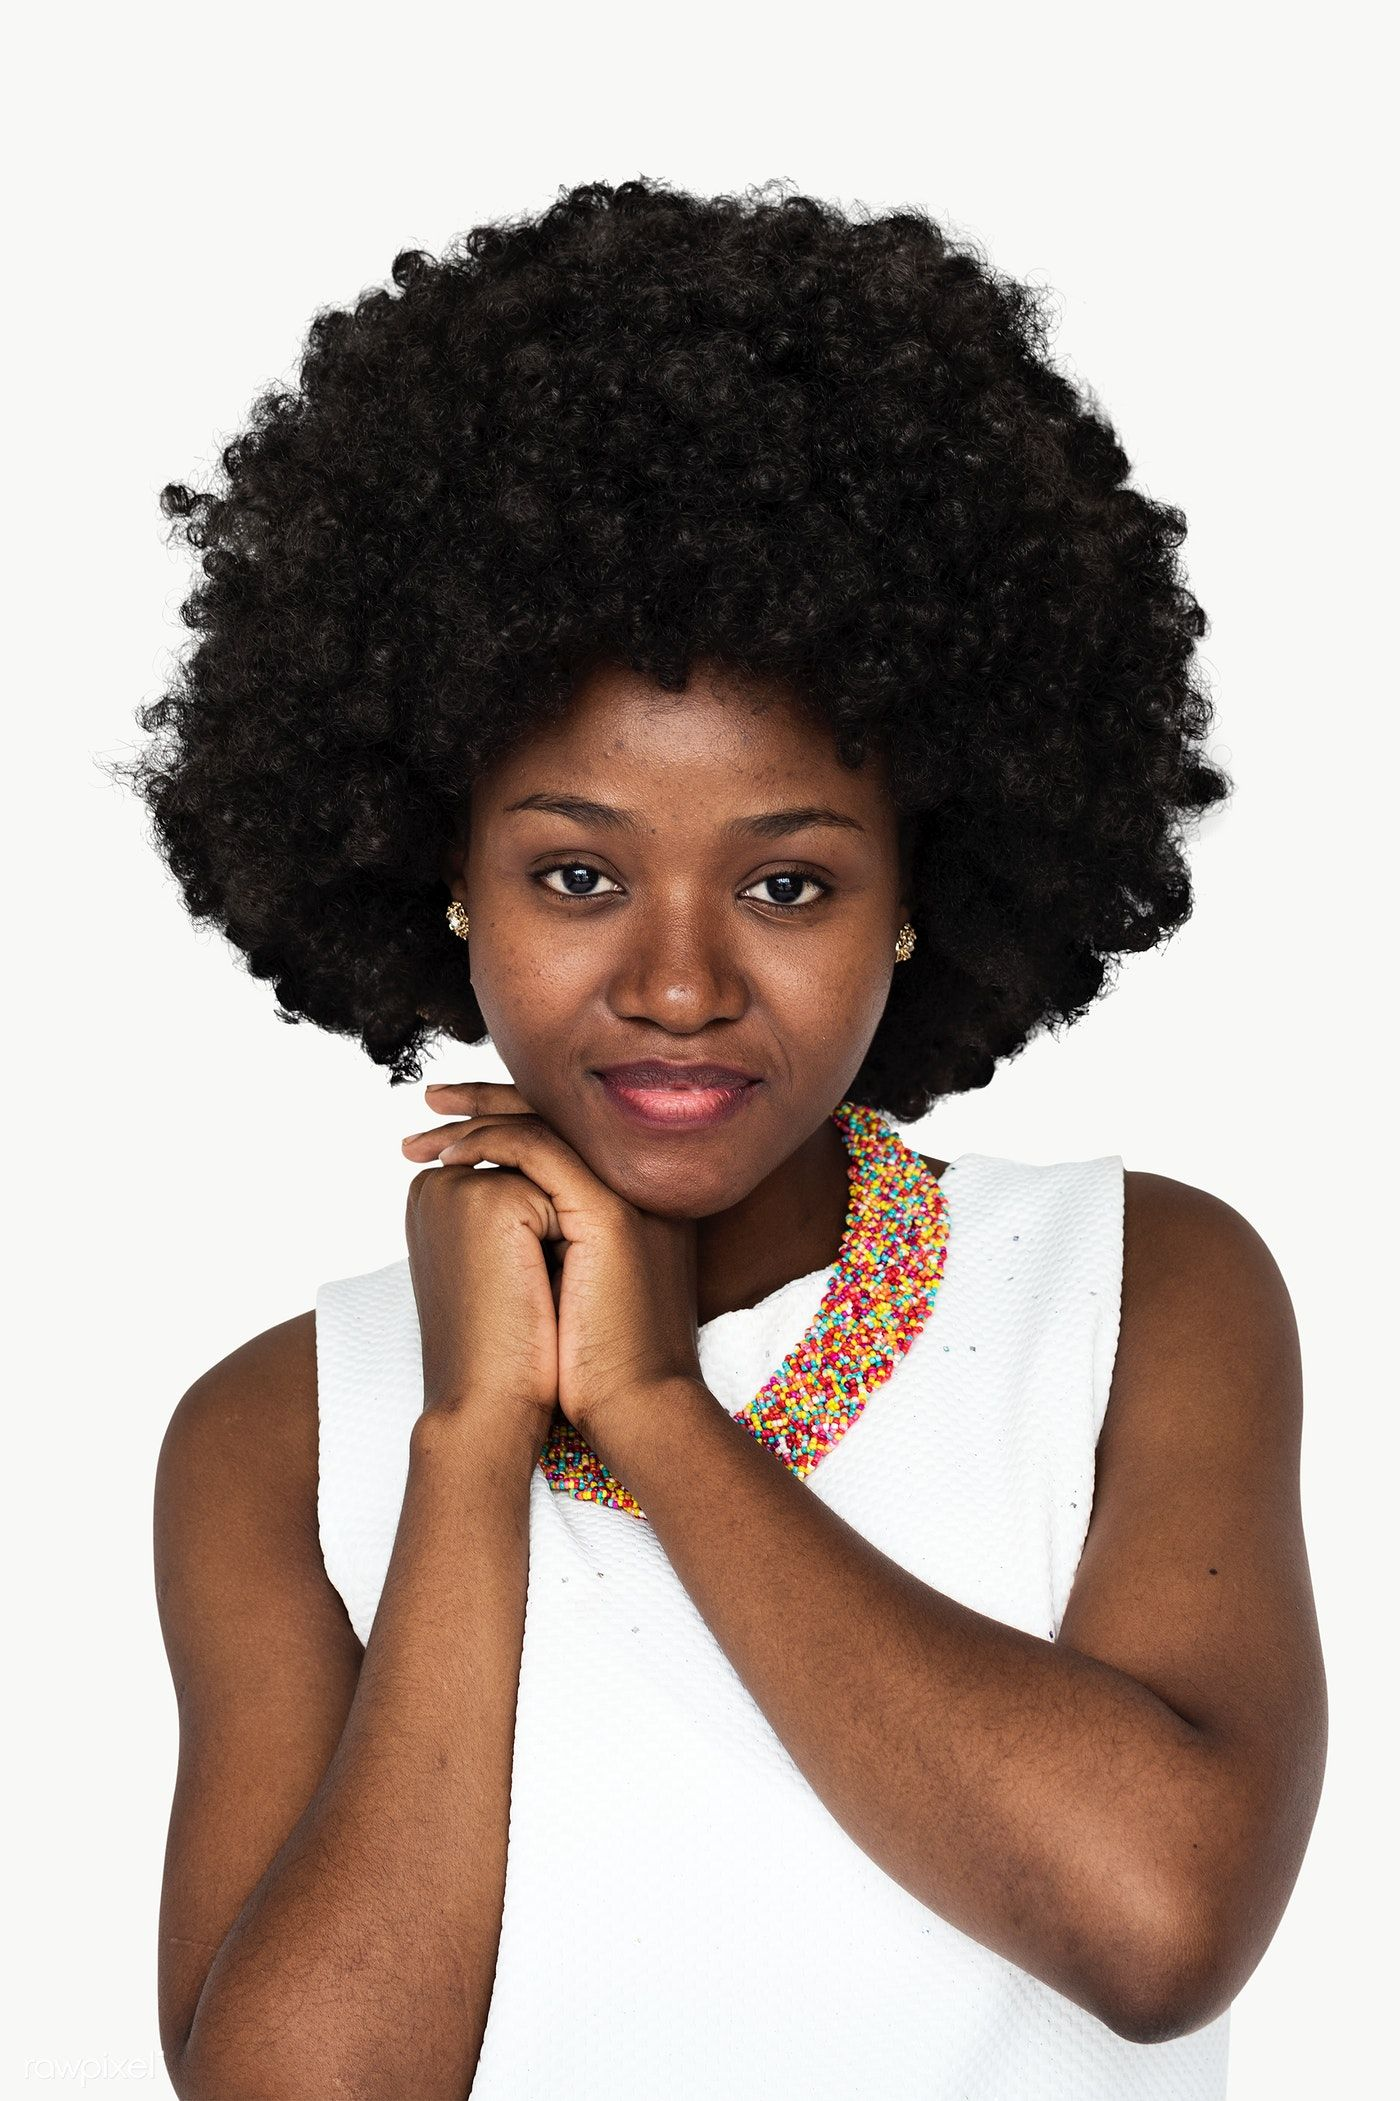 Download Premium Png Of Young Black Woman Transparent Png 1232545 Black Women Young Black Short Brown Hair